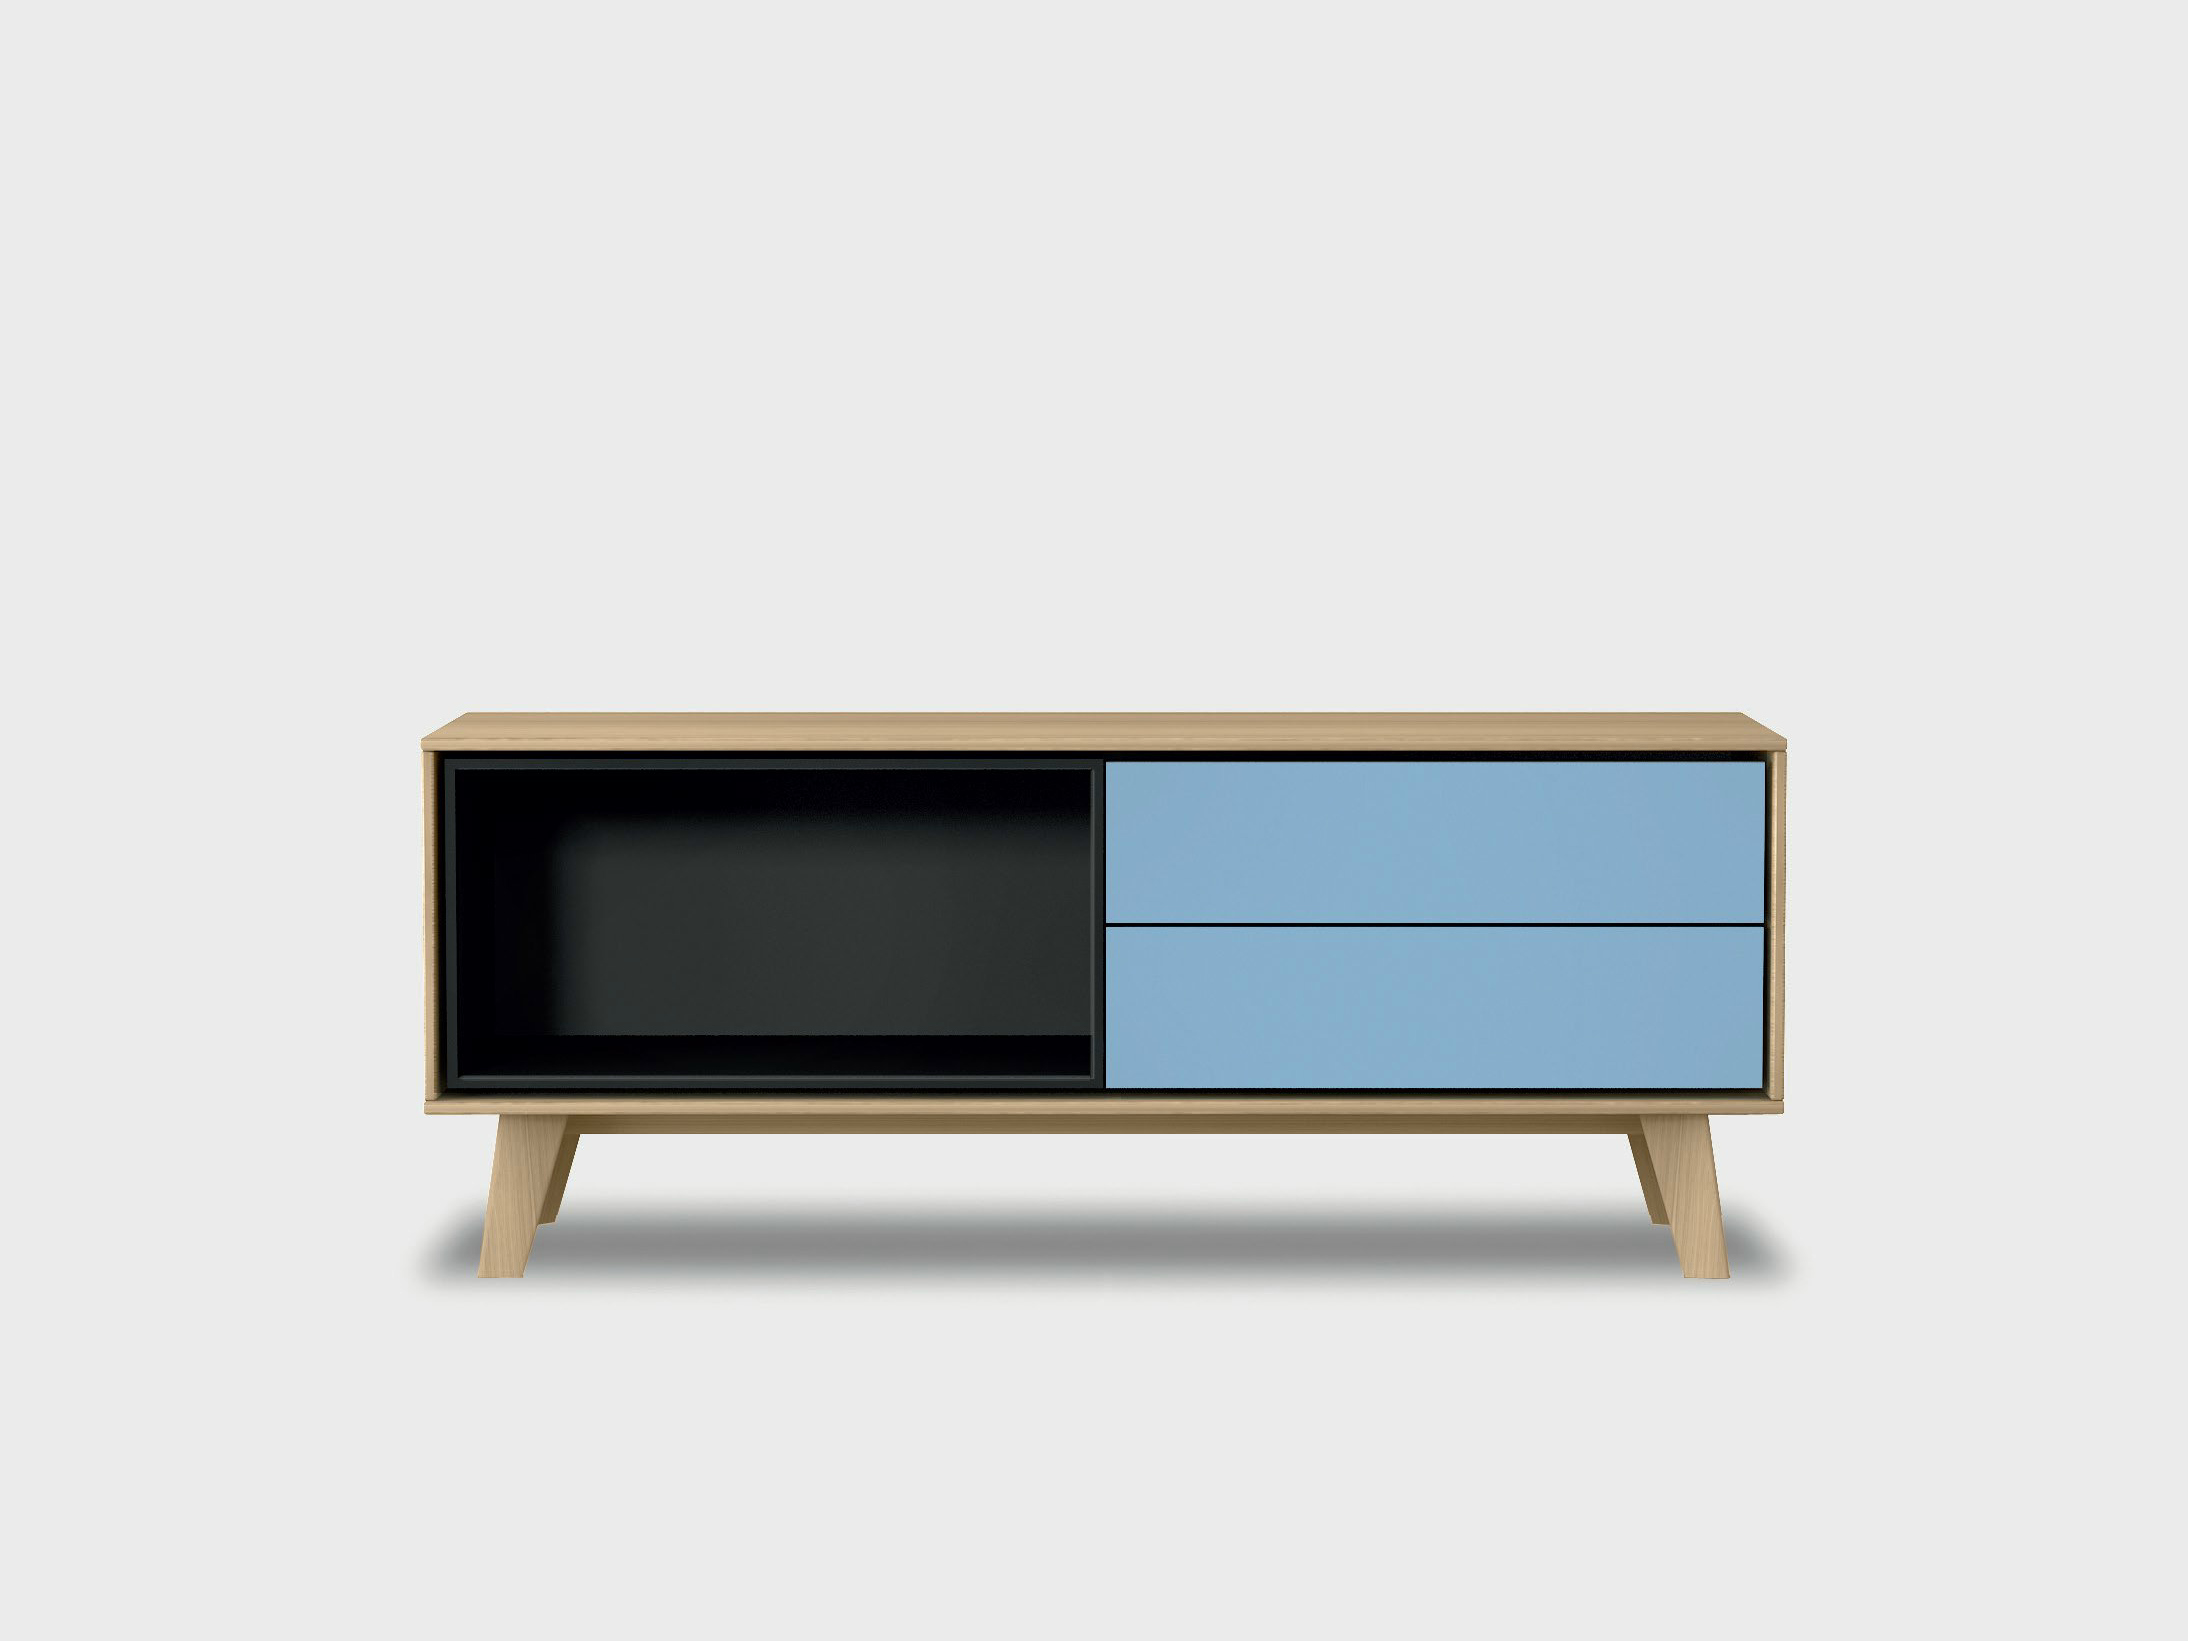 Treku Meuble Tv Lacquered Solid Wood Sideboard Aura C2 2 By Treku Design